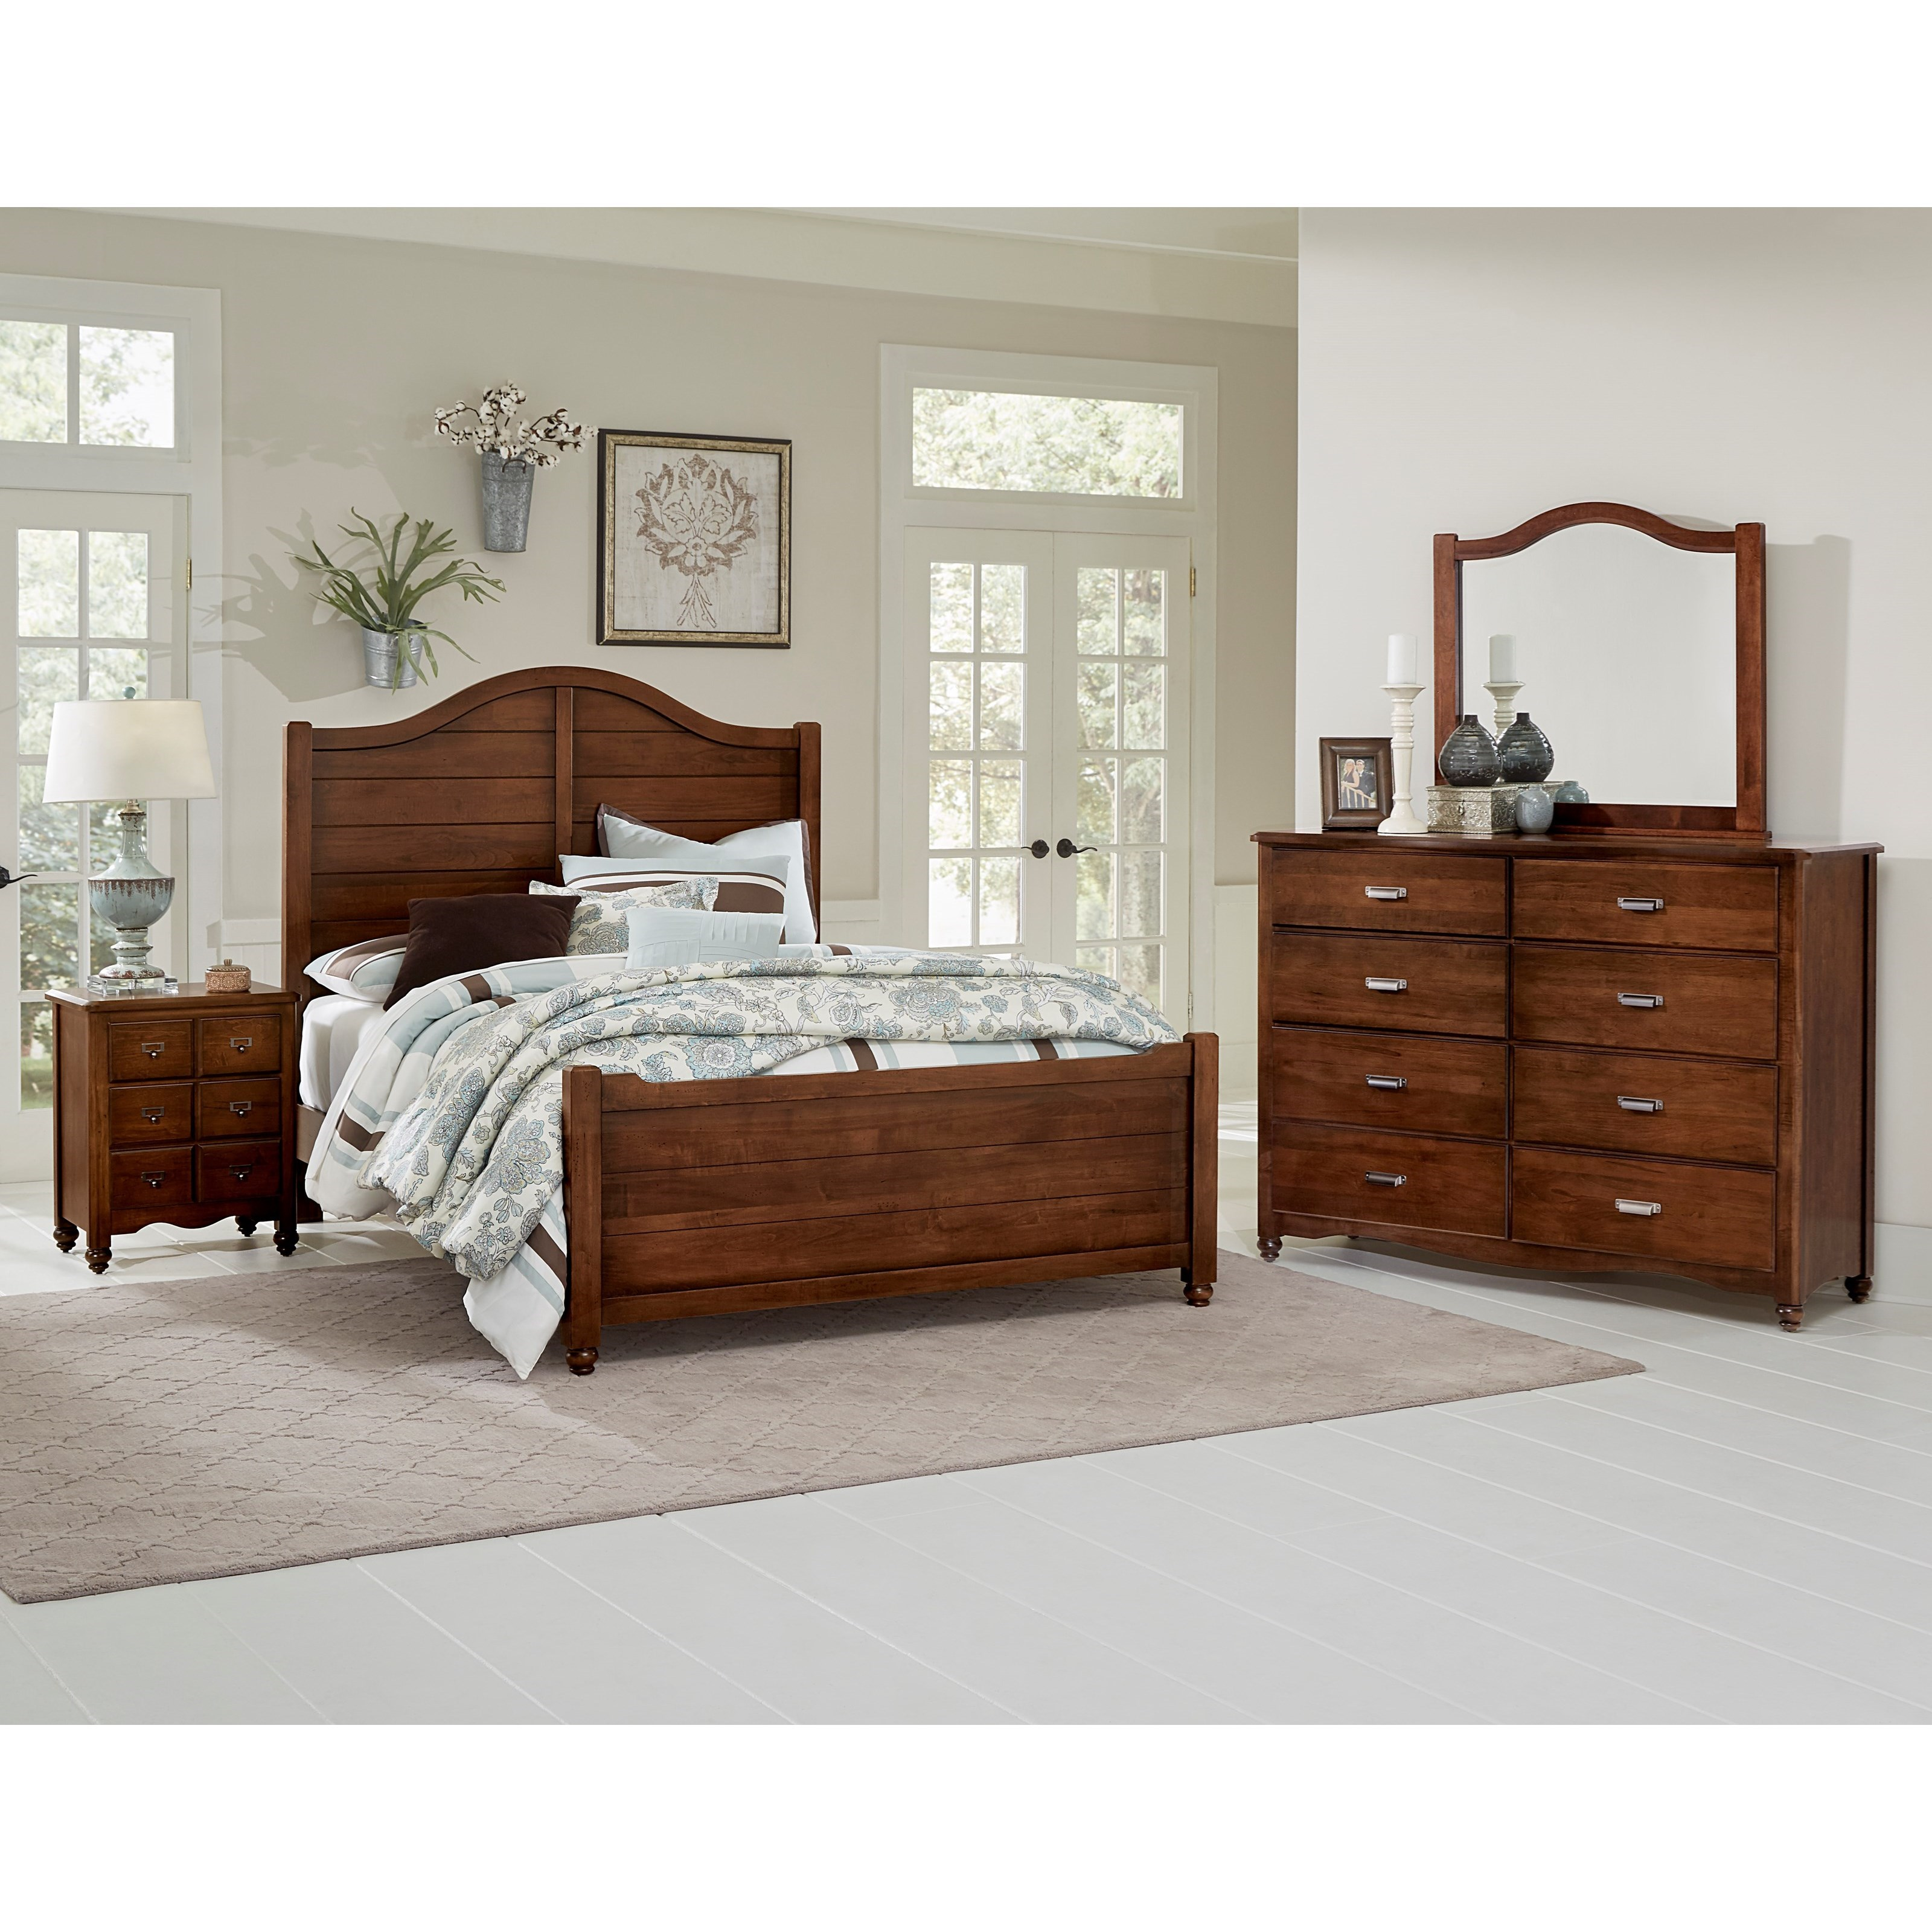 vaughan bassett american maple king bedroom group belfort furniture bedroom groups. Black Bedroom Furniture Sets. Home Design Ideas